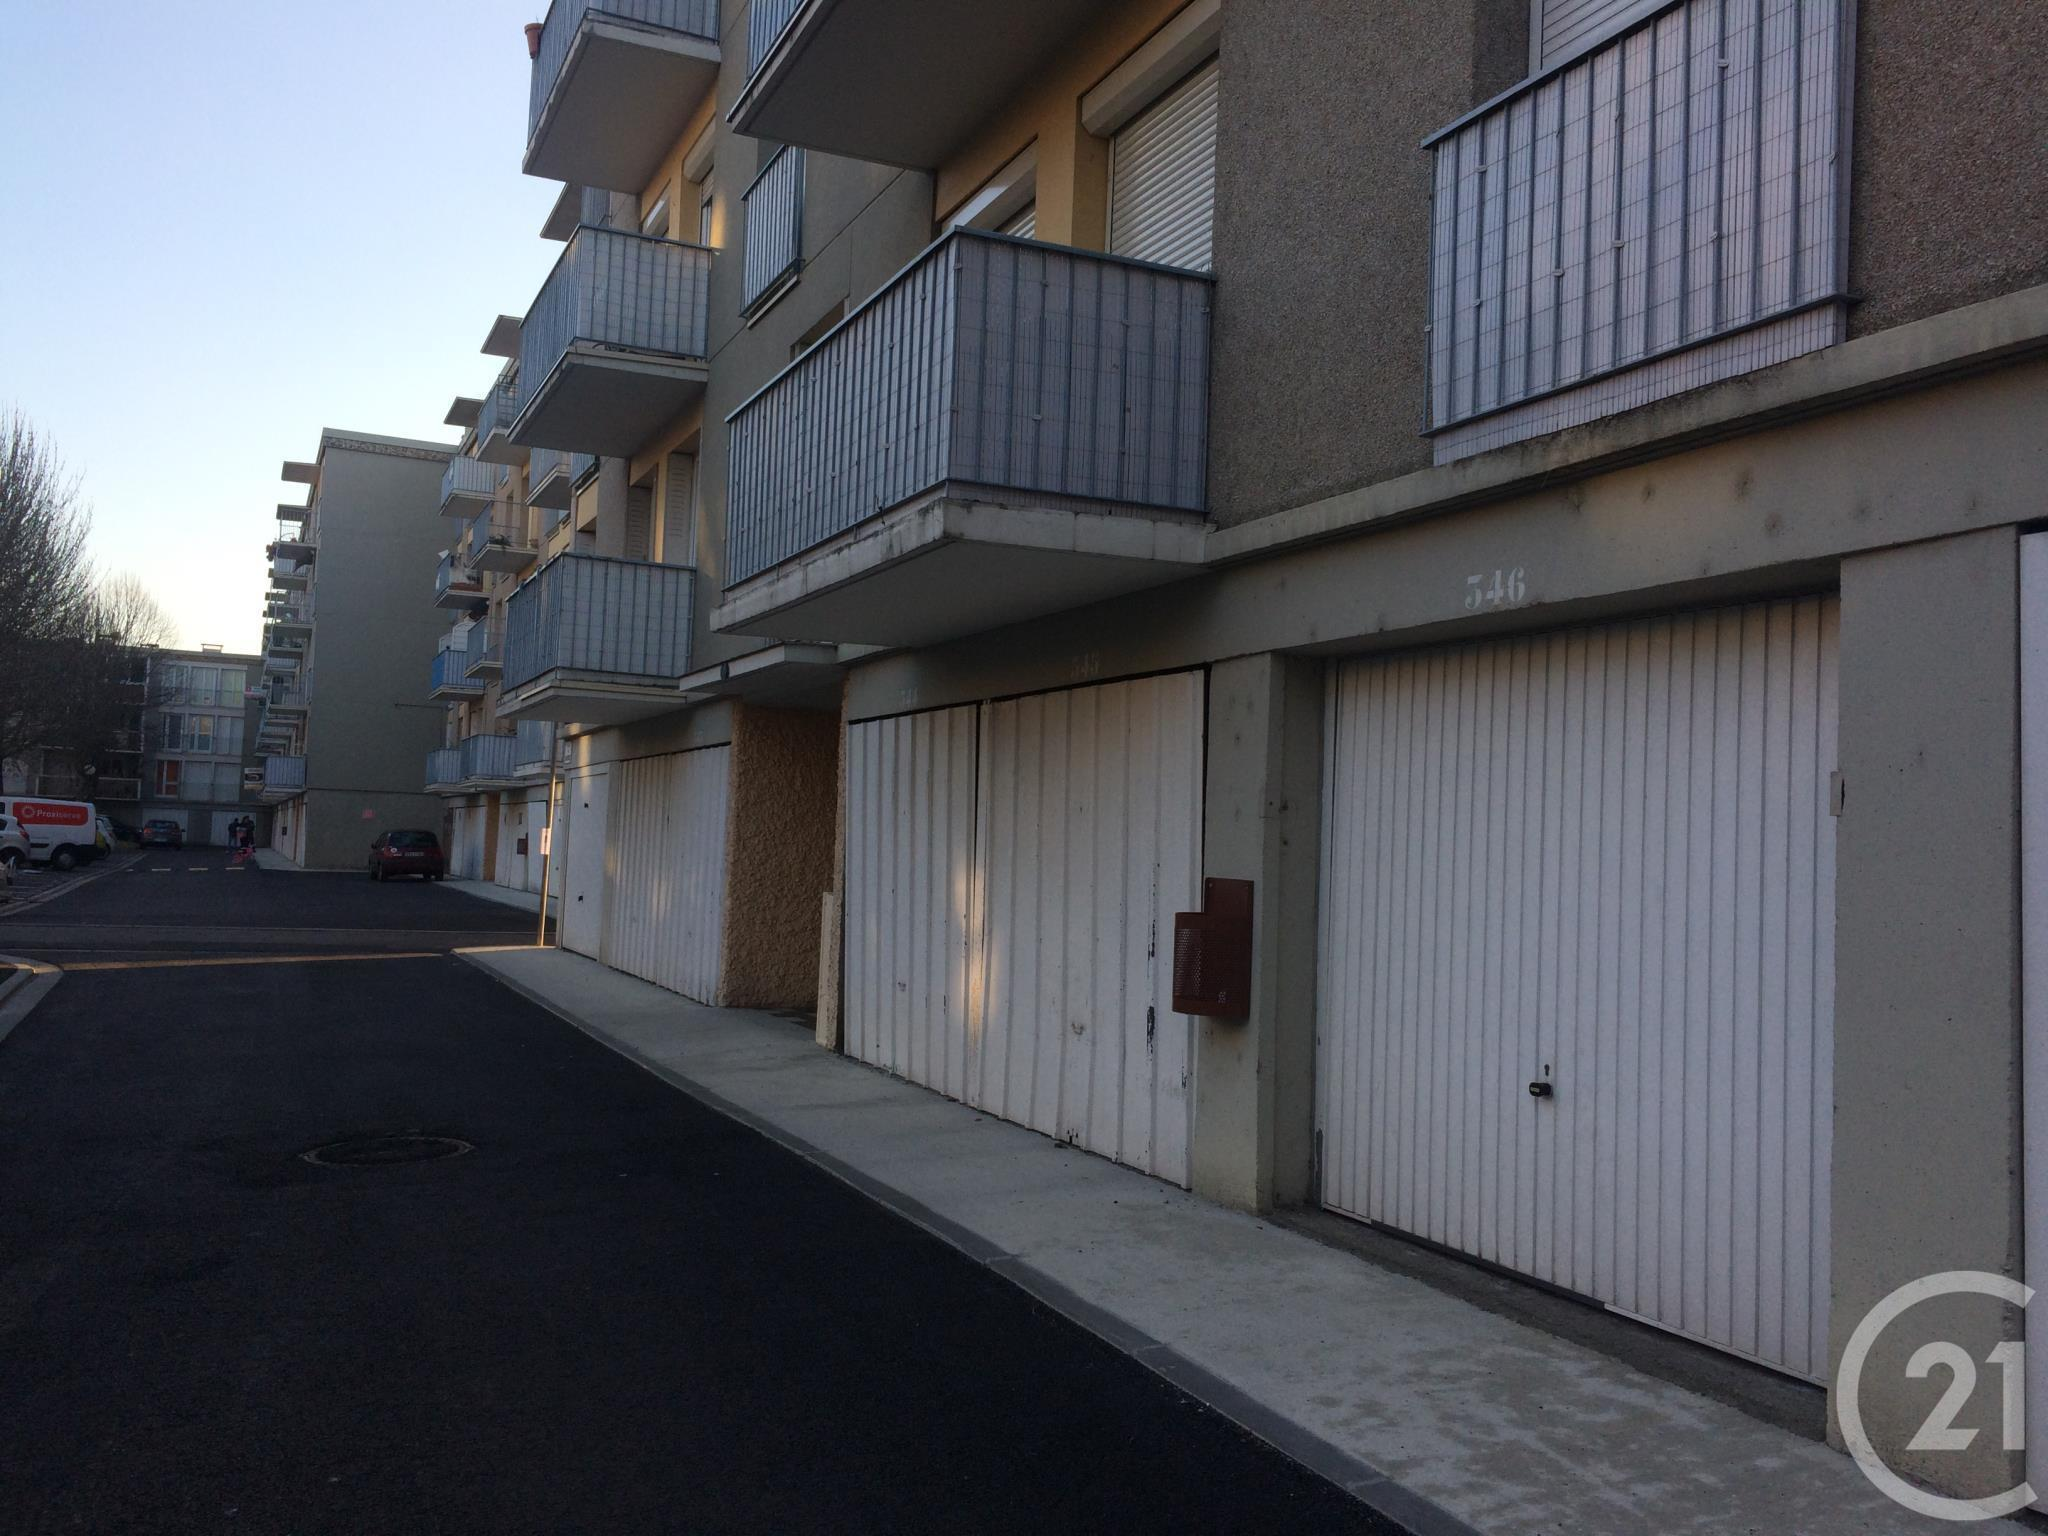 Parking à vendre - 30 m2 - TOULOUSE - 31 - MIDI-PYRENEES